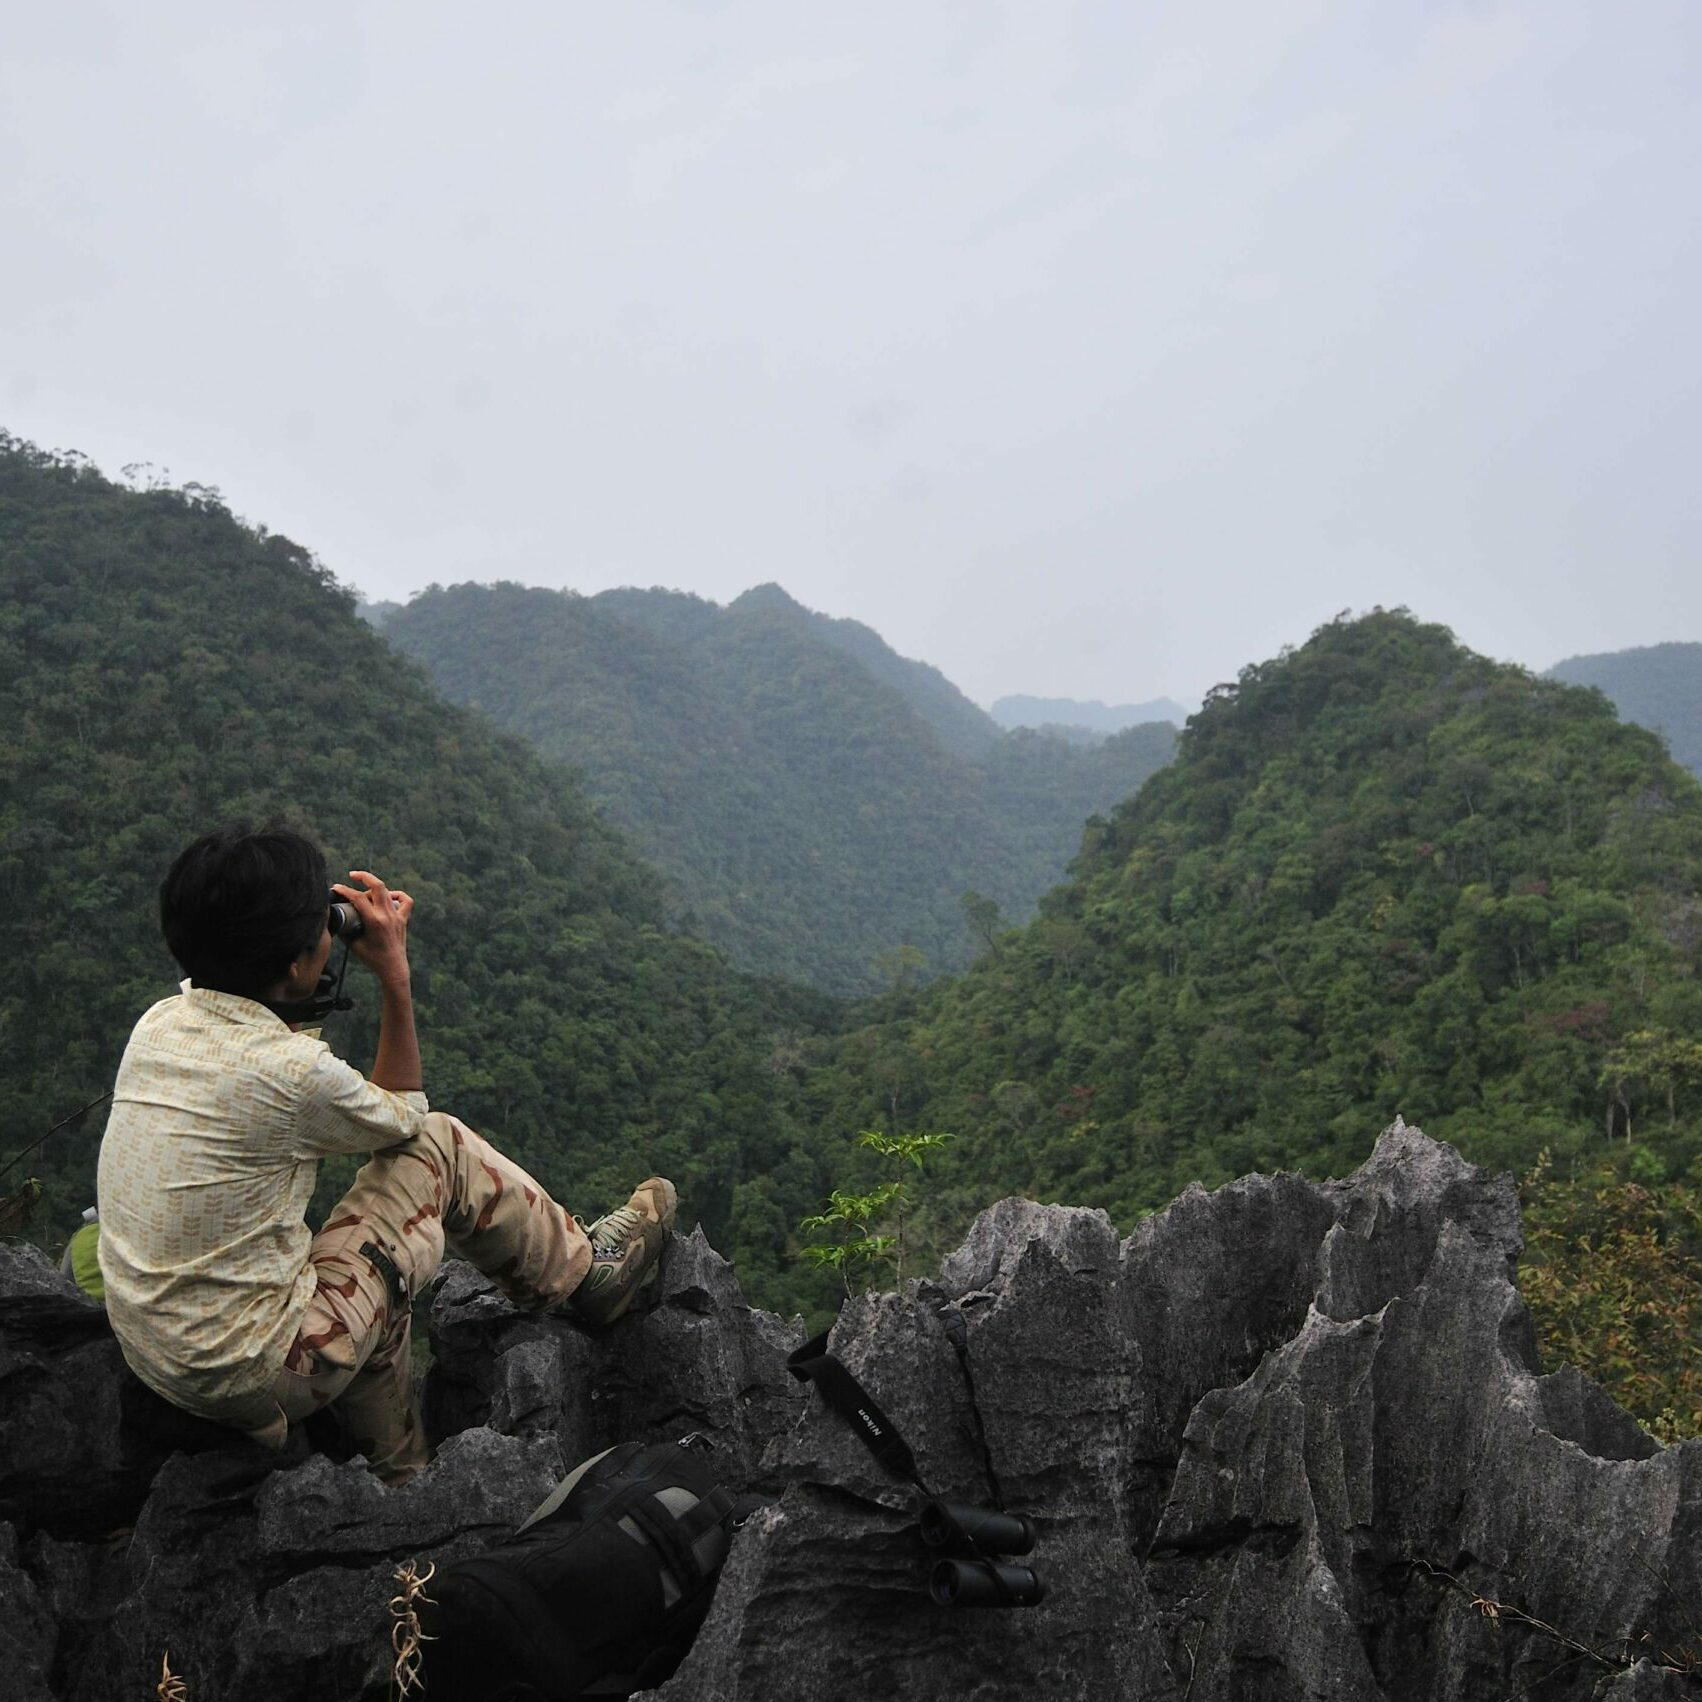 Monitoring gibbons in Asia